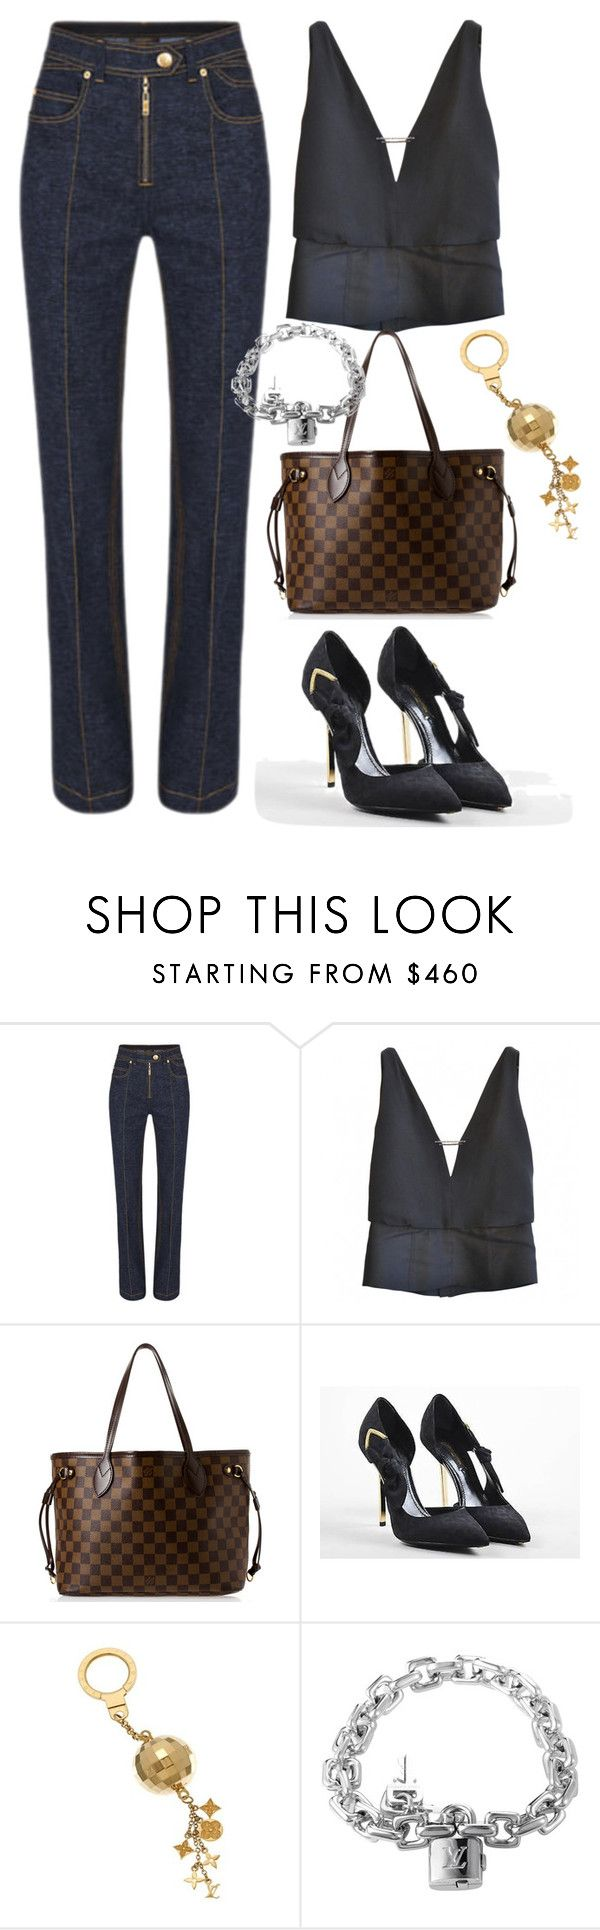 """Louis Vuiiton"" by silverboybeth on Polyvore featuring Louis Vuitton"